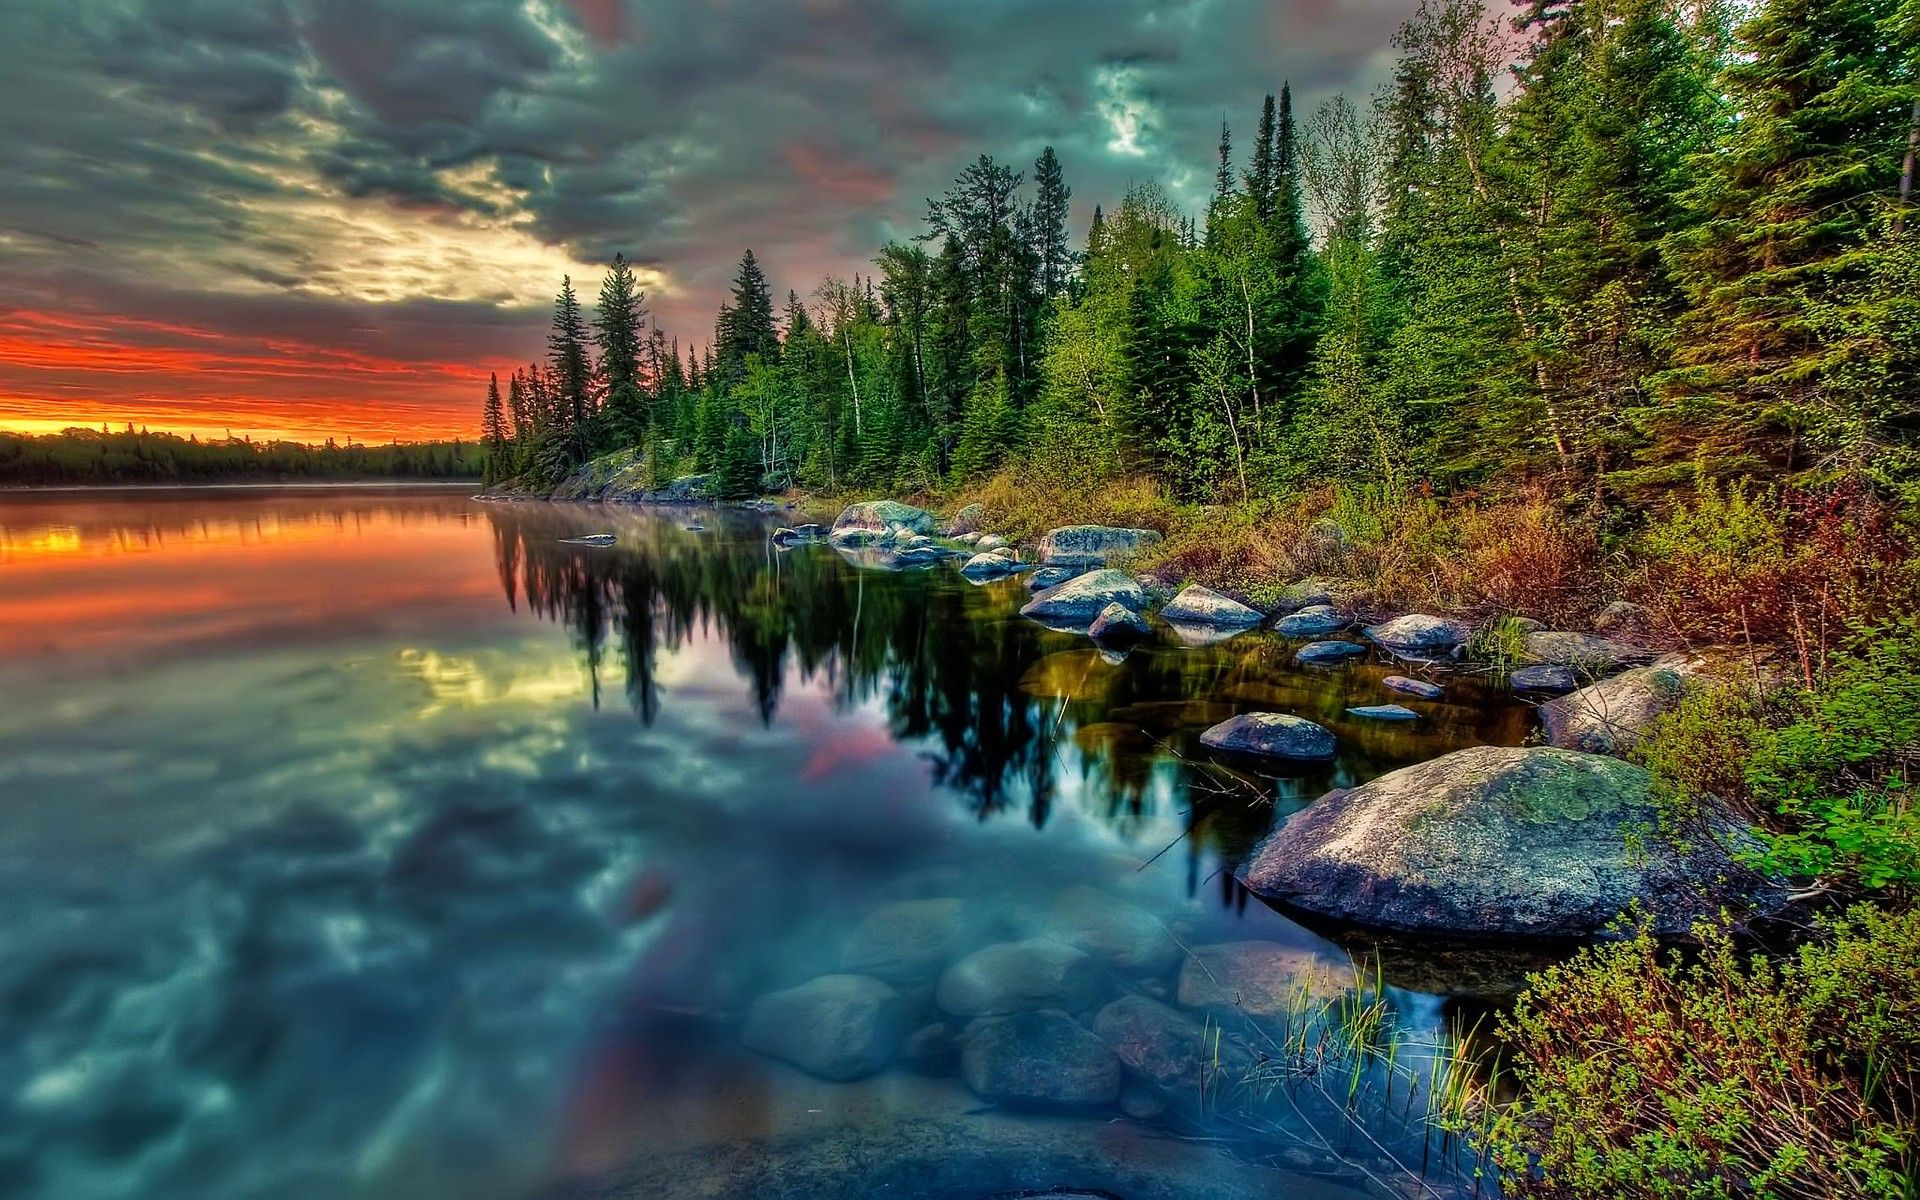 Live HD Wallpaper (With images) Beautiful nature